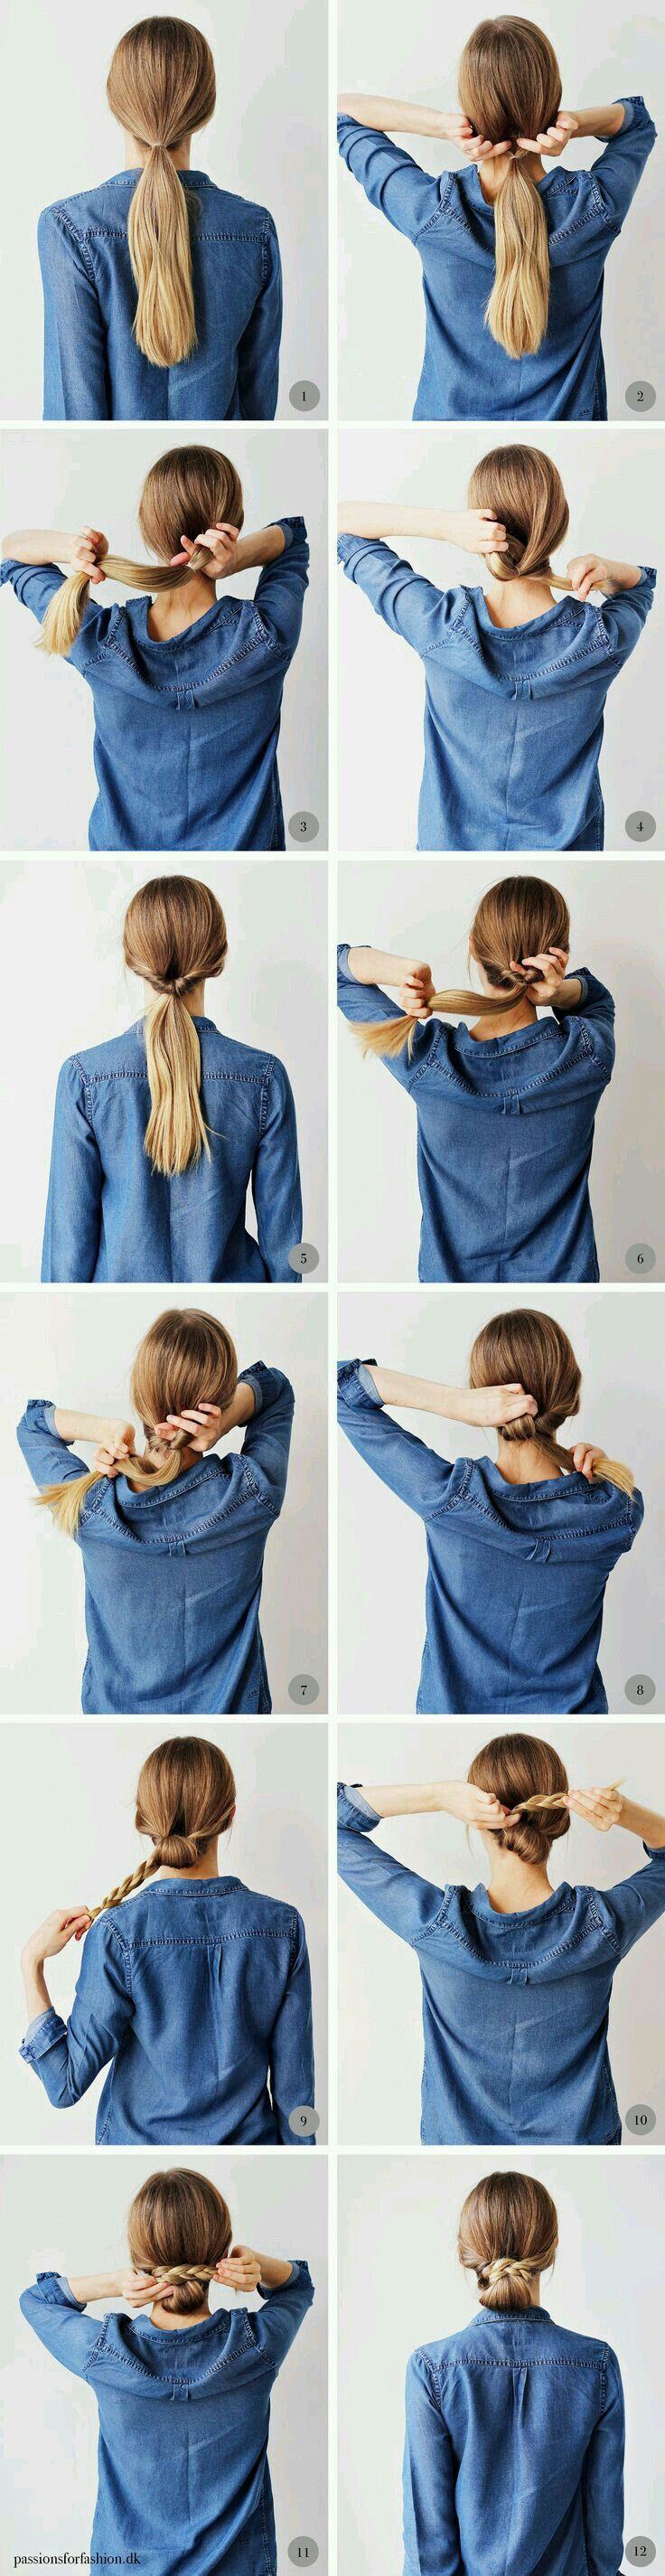 Pin by catalina barañao on hair pinterest vintage hair style